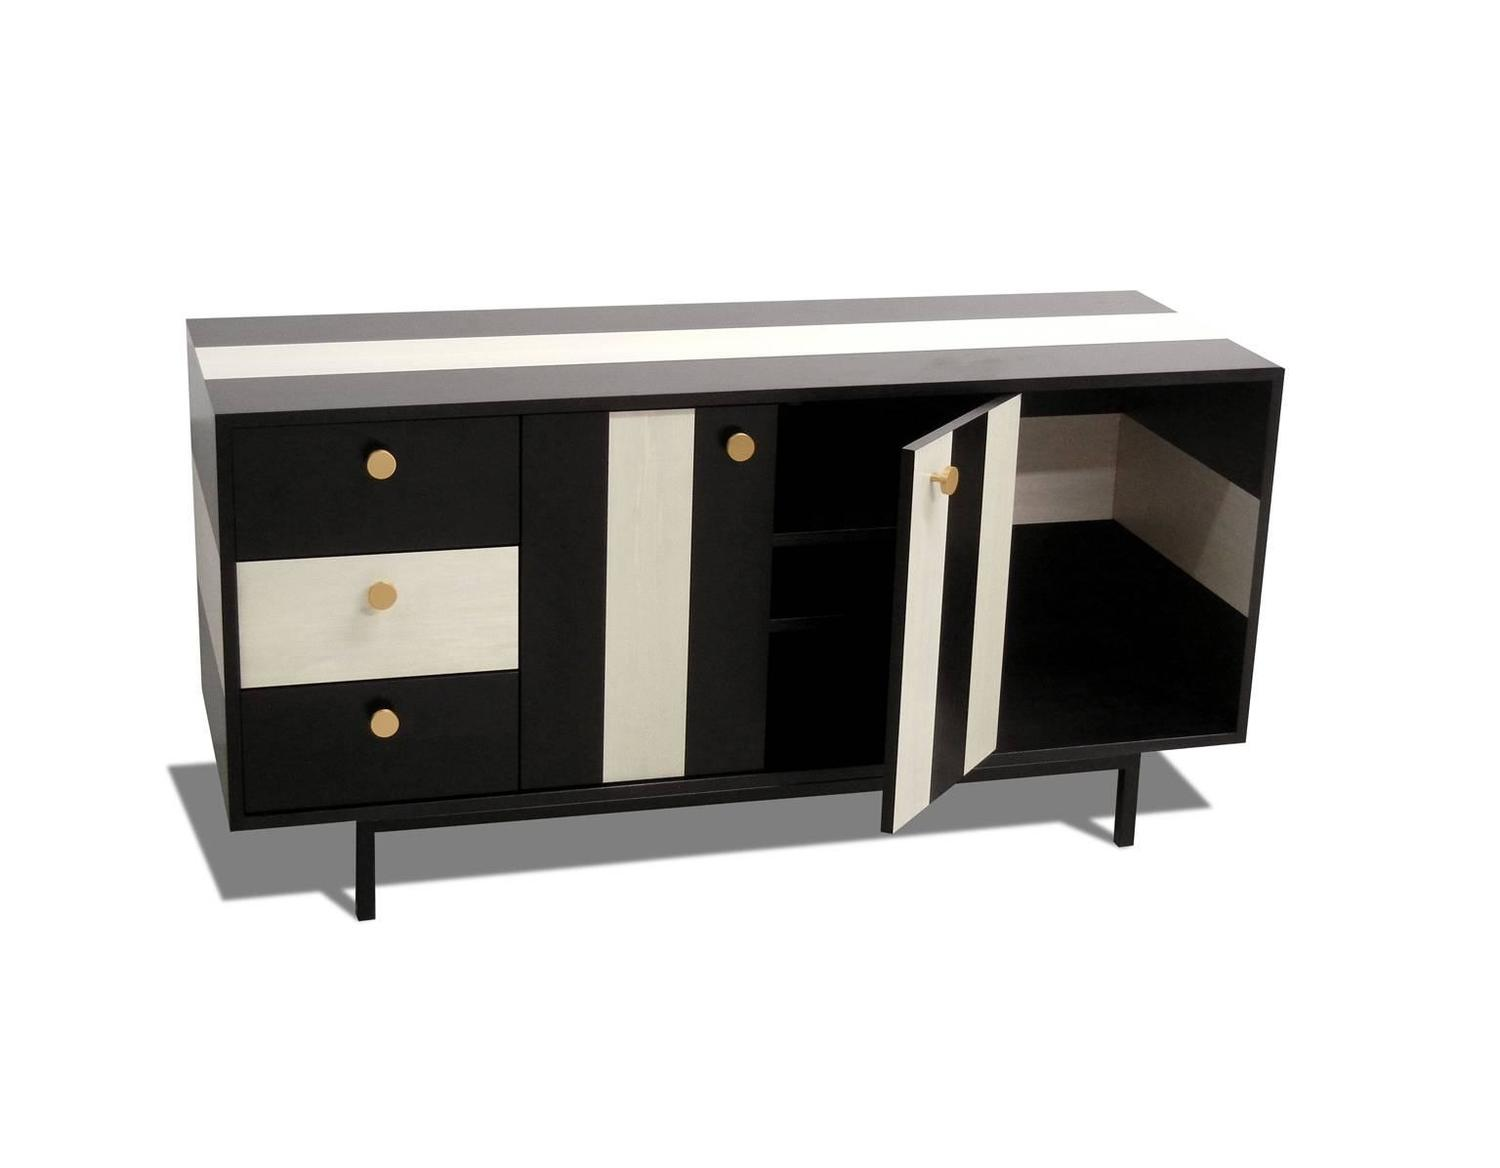 atocha design no wave credenza or sideboard for sale at 1stdibs. Black Bedroom Furniture Sets. Home Design Ideas